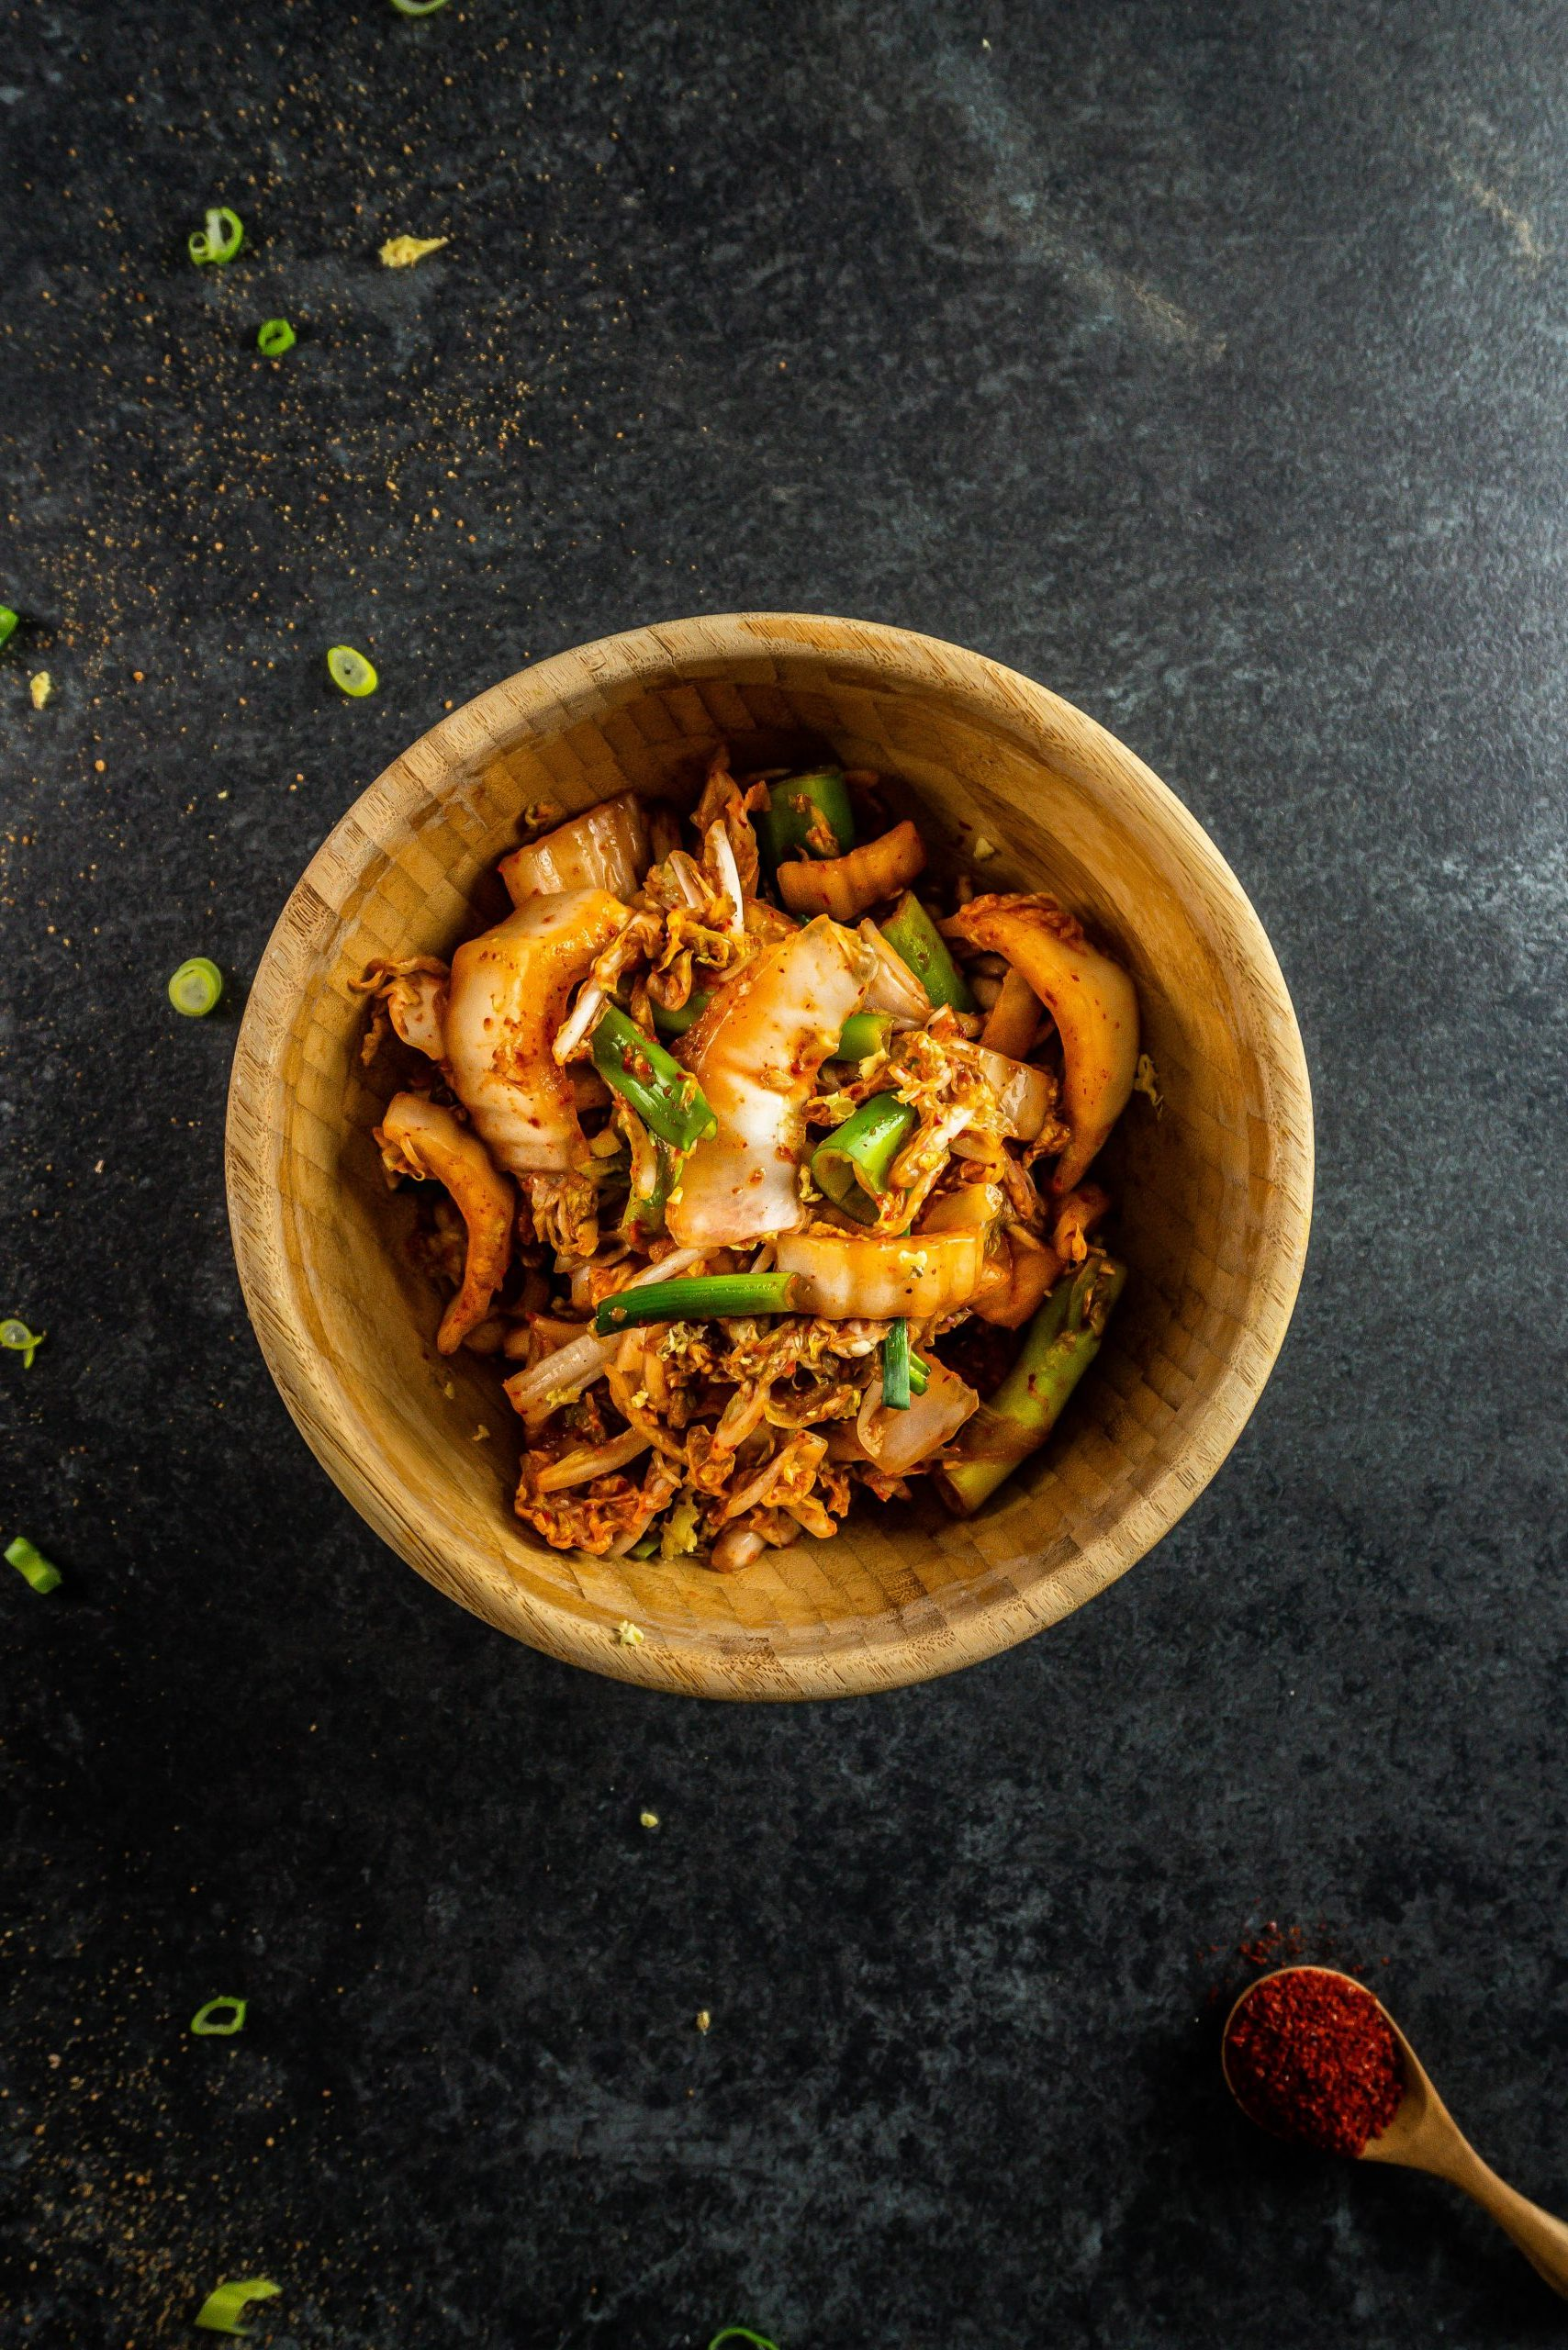 Delicious Vegan Kimchi in a wooden bowl on a dark background photographed from above